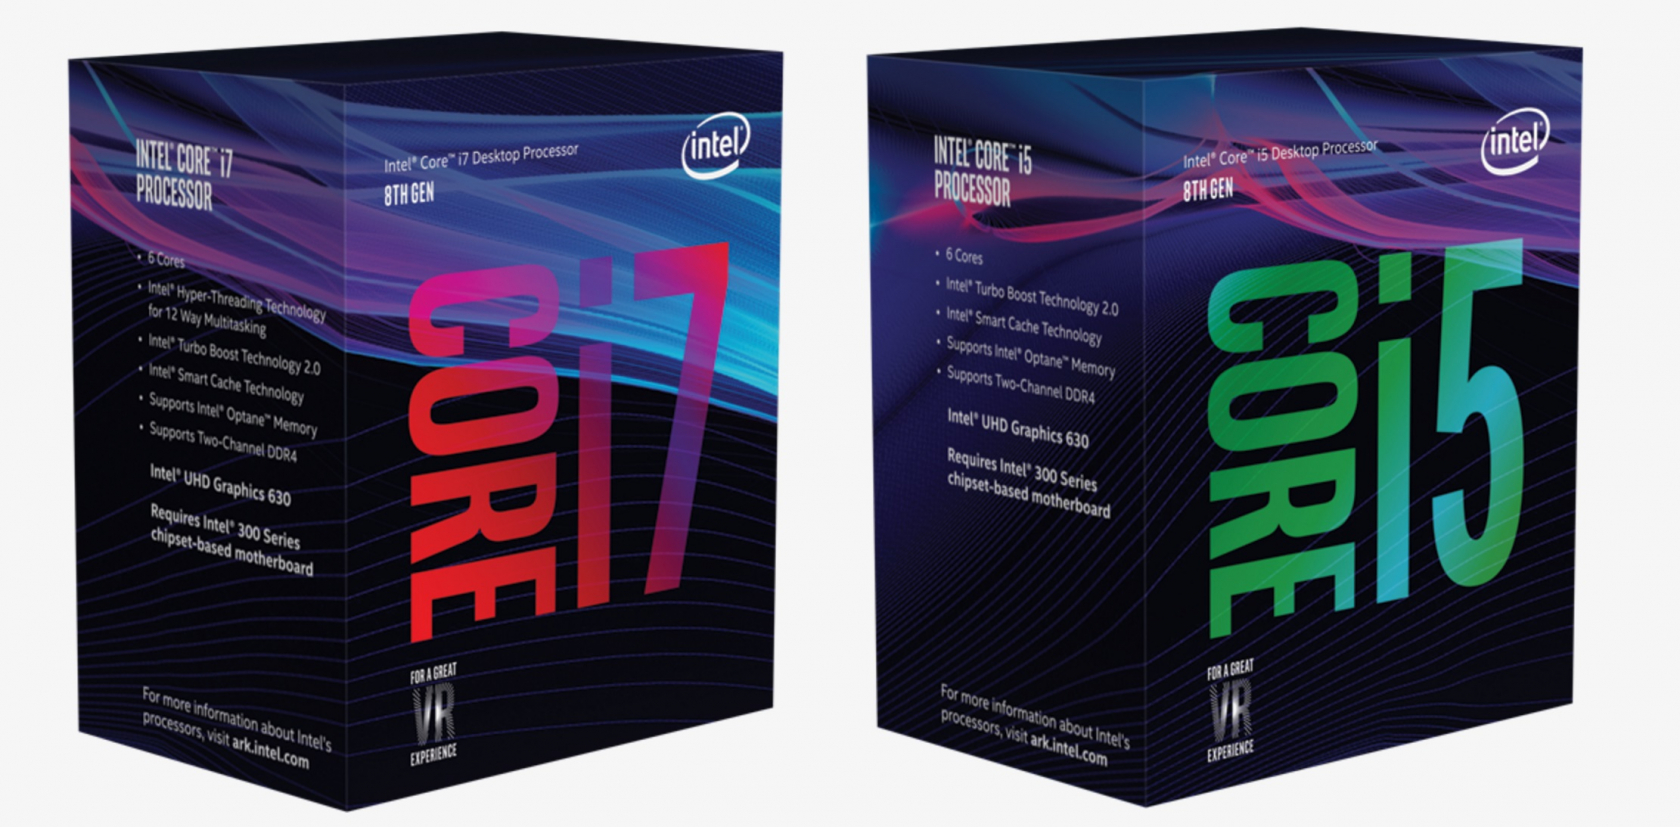 Intel unveils the first of its 8th generation Core CPUs